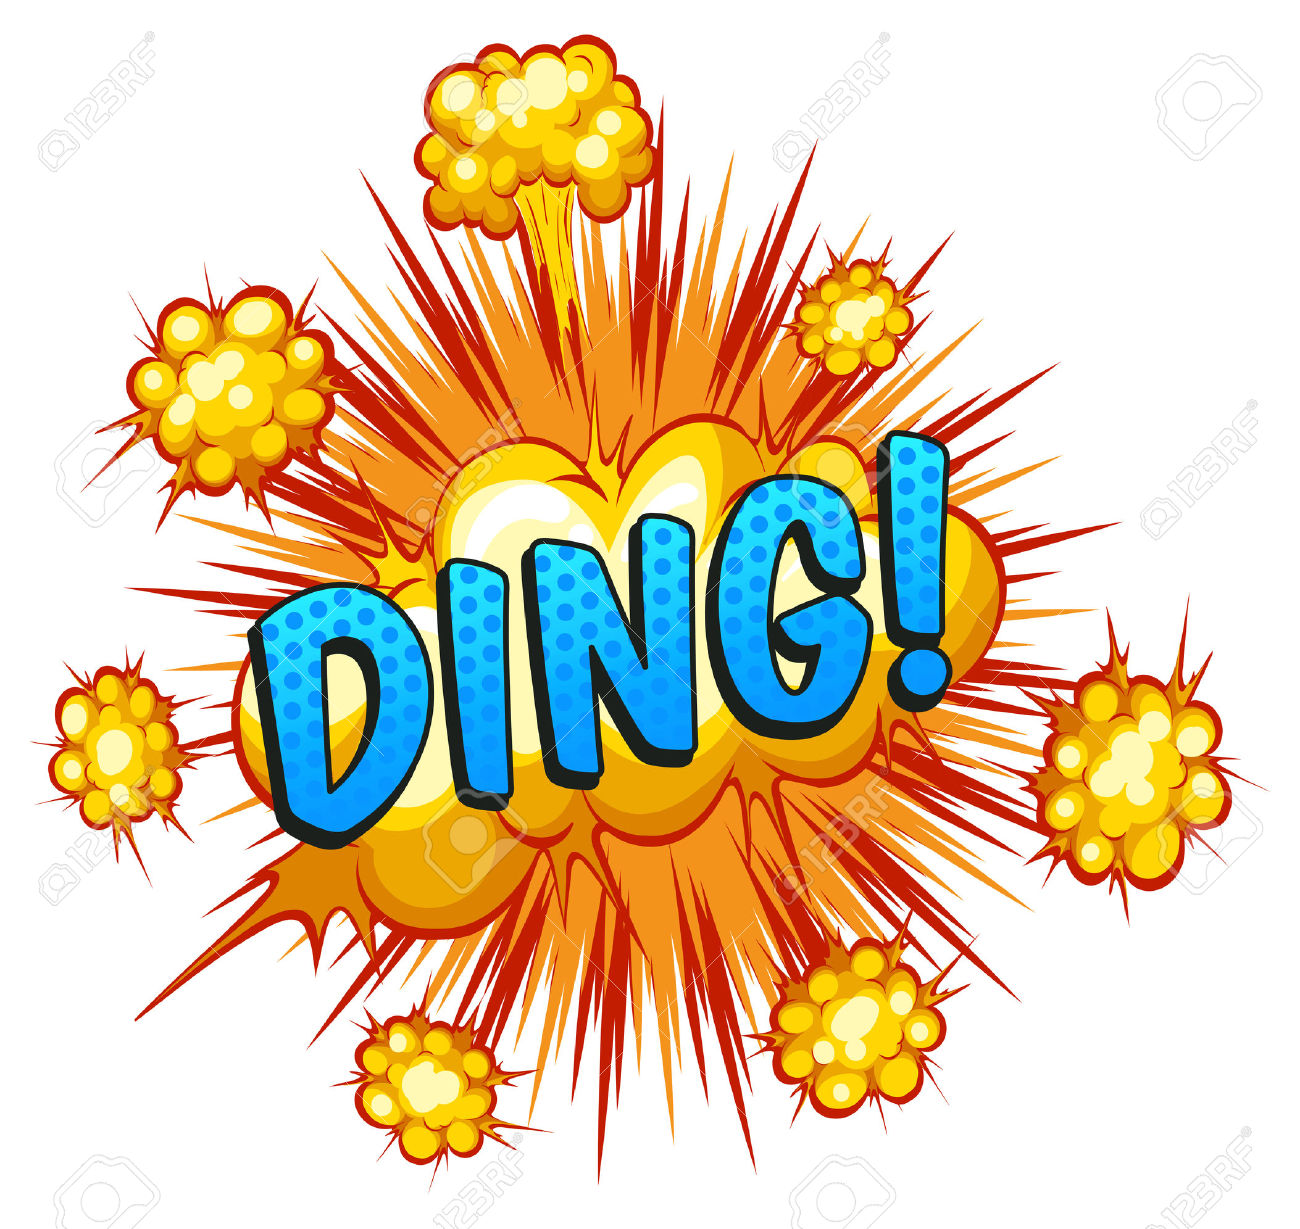 Word Ding With Explosion Background Royalty Free Cliparts, Vectors.